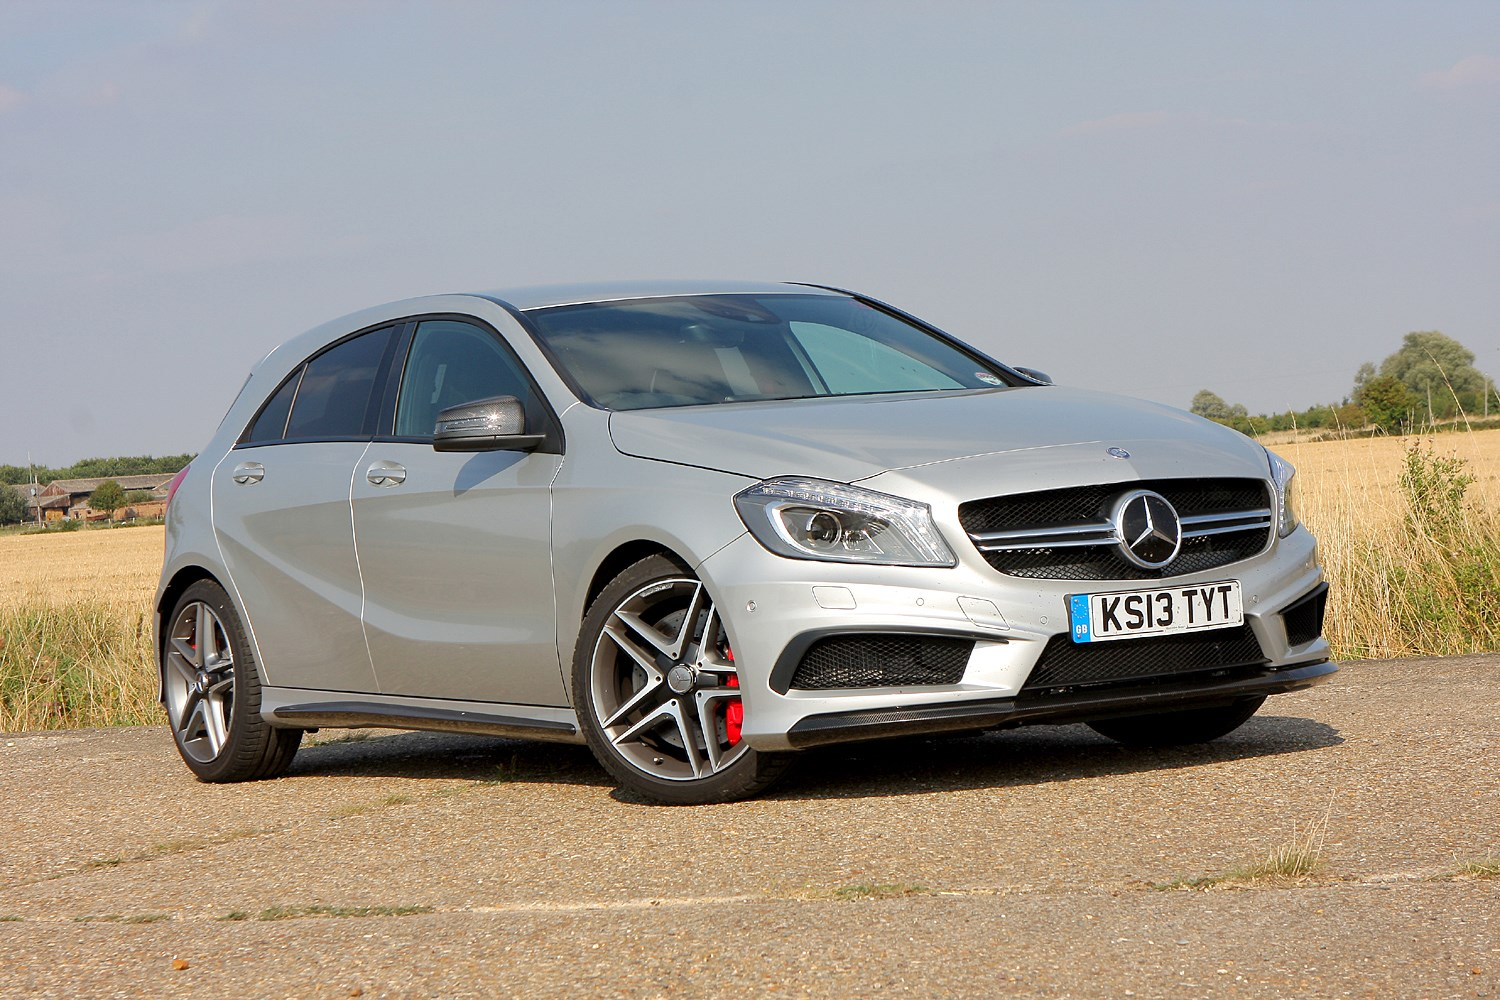 Mercedes benz a class amg 2013 running costs parkers for How much are mercedes benz